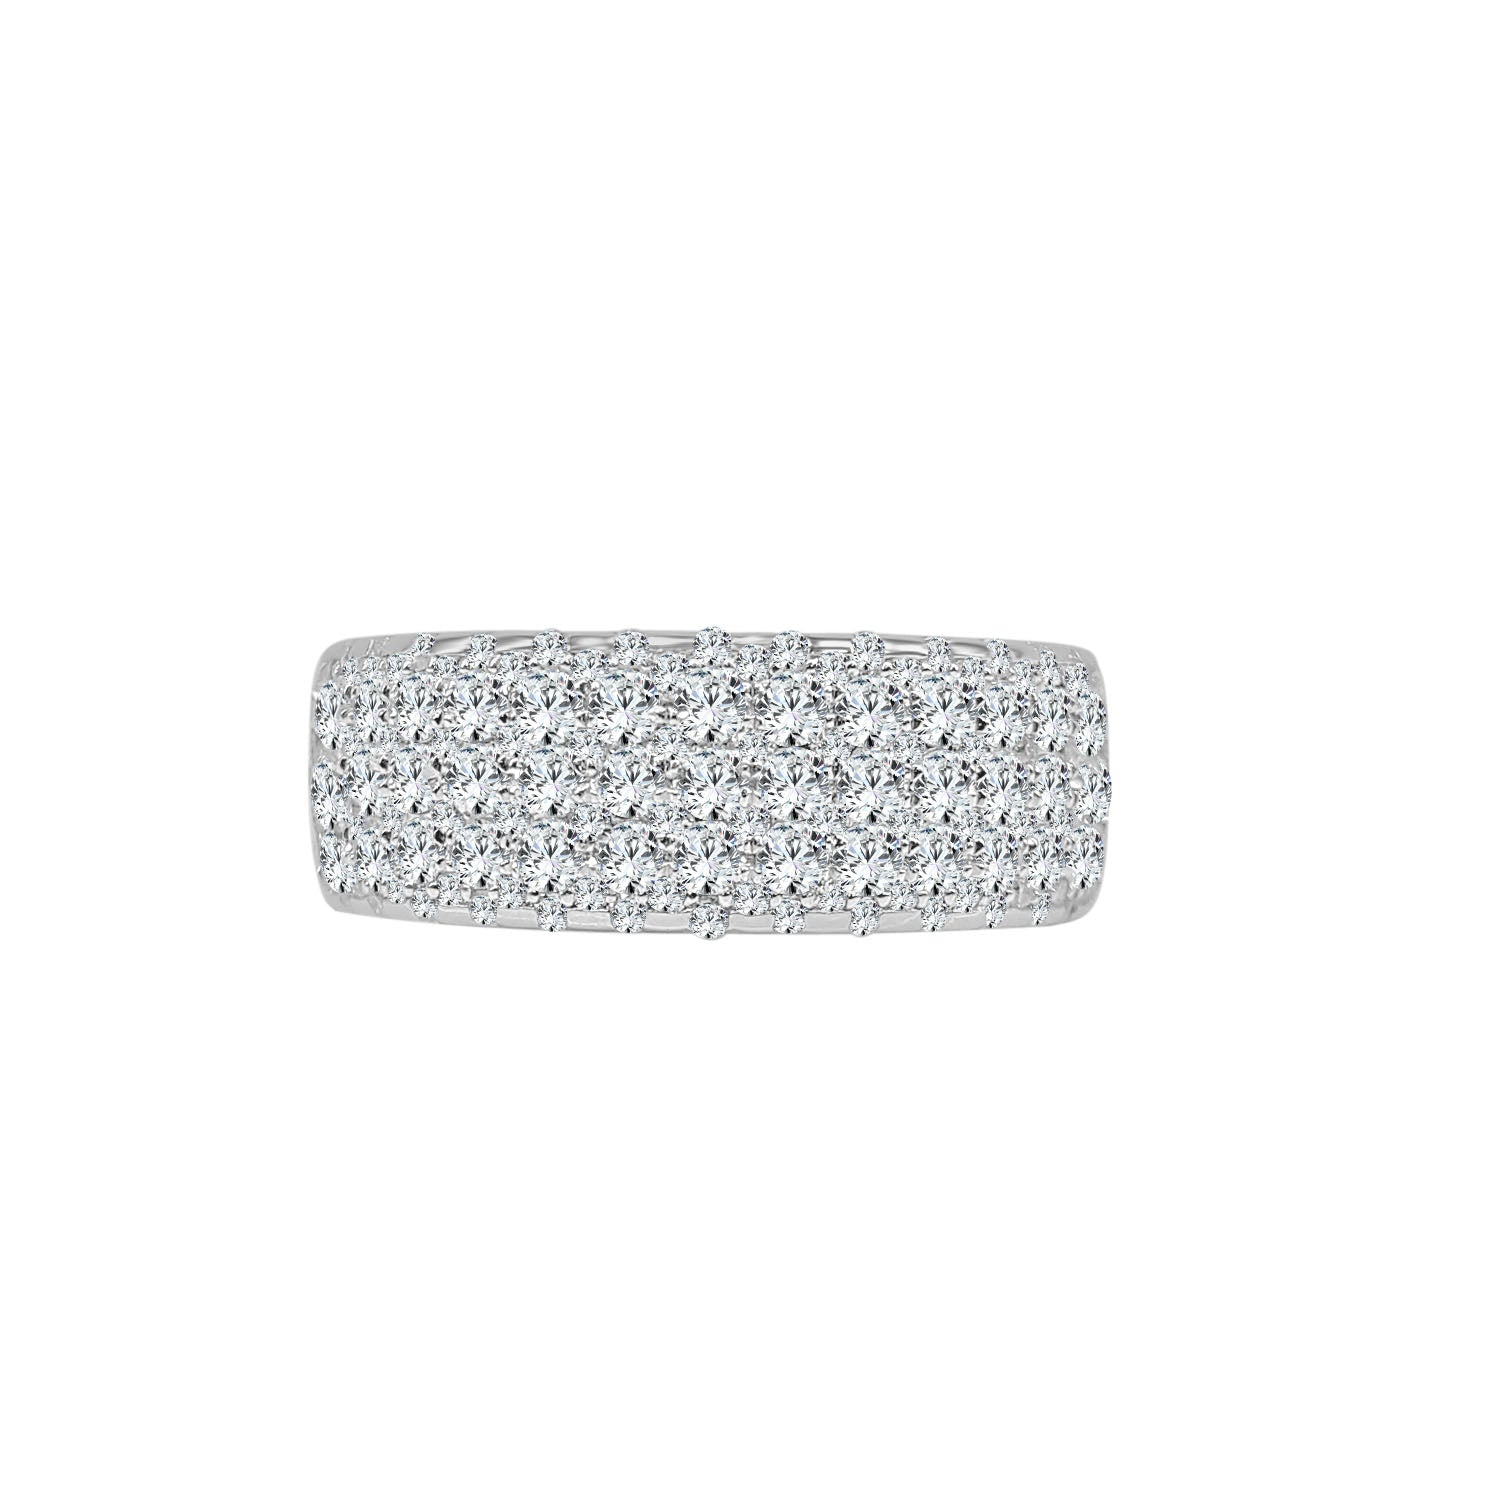 Pave 1.12 Carat Diamond Fancy Wide Ring